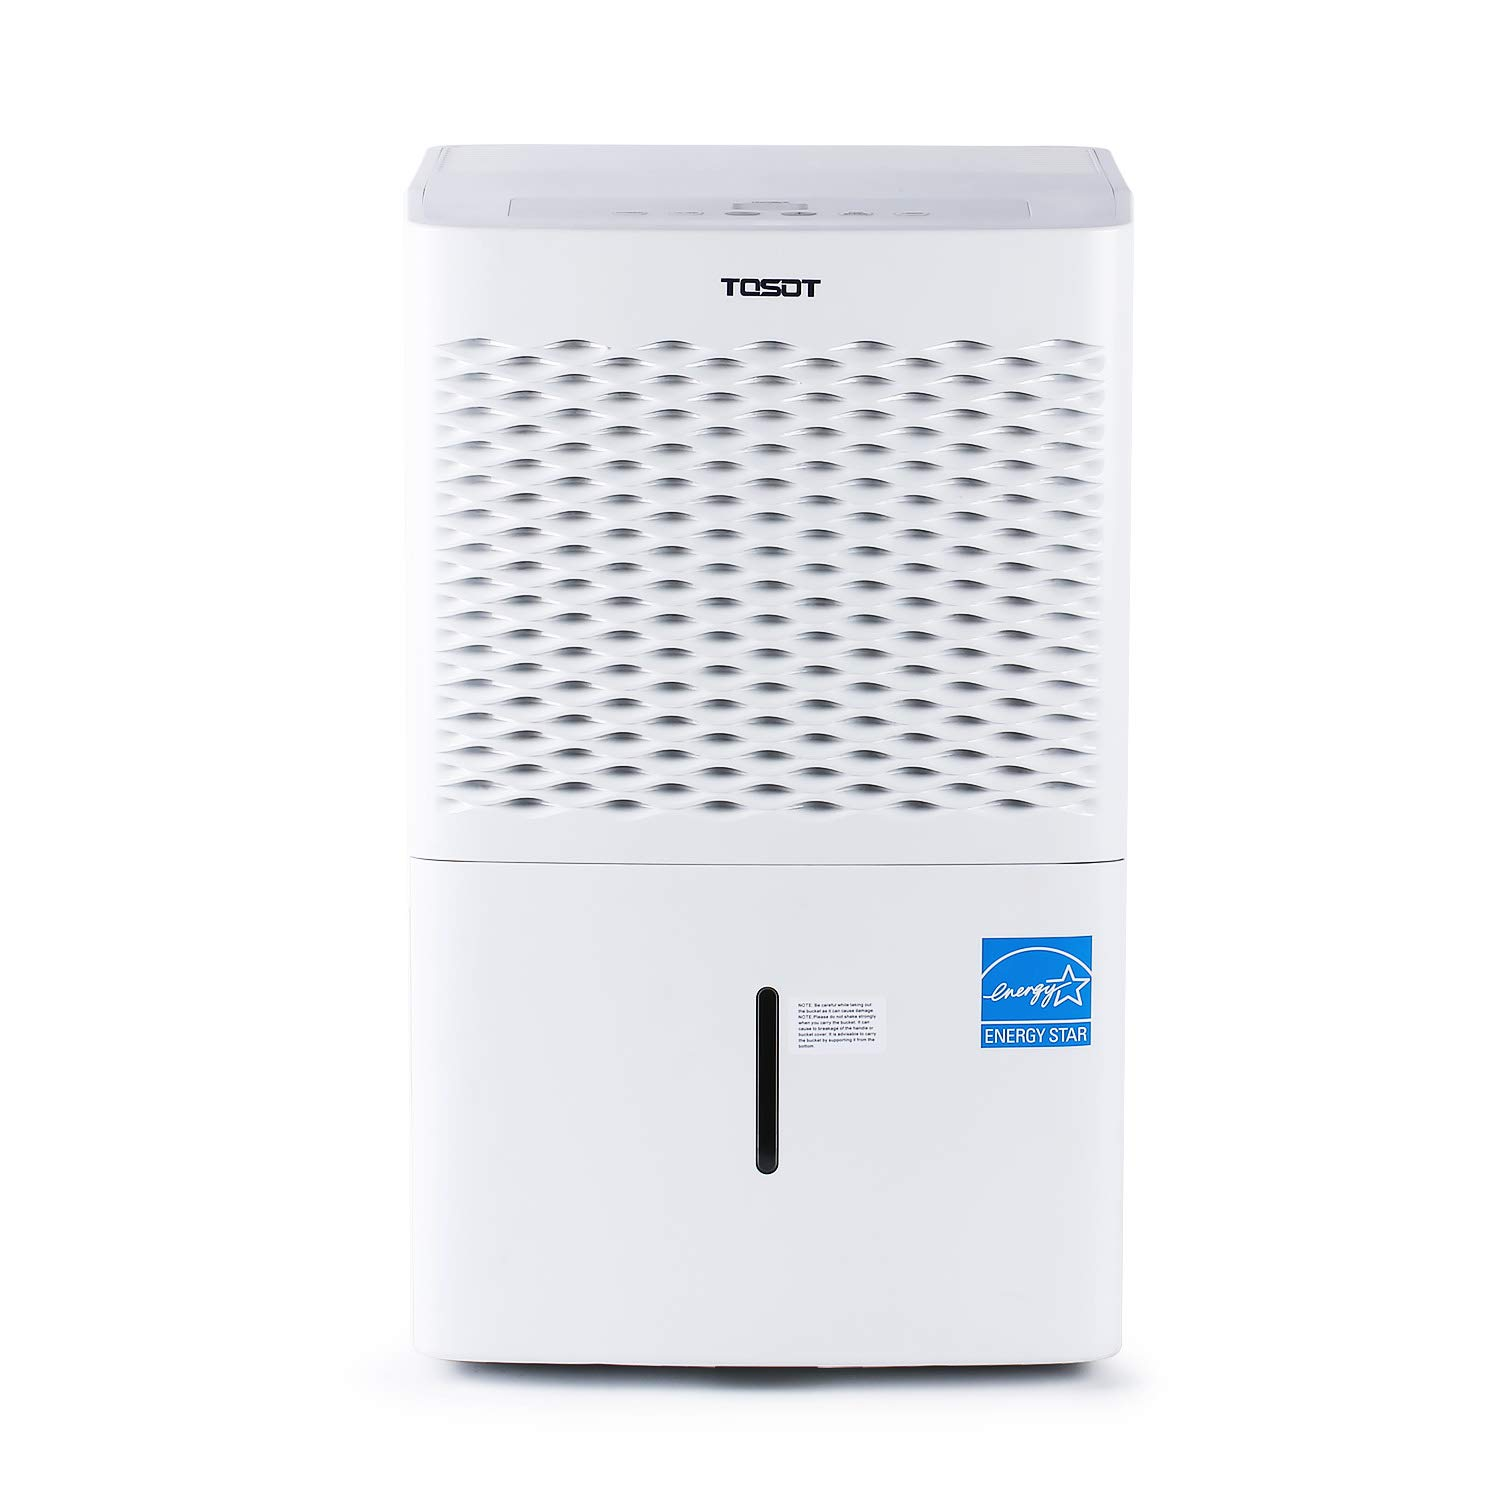 Best Dehumidifier for Mold: Tosot